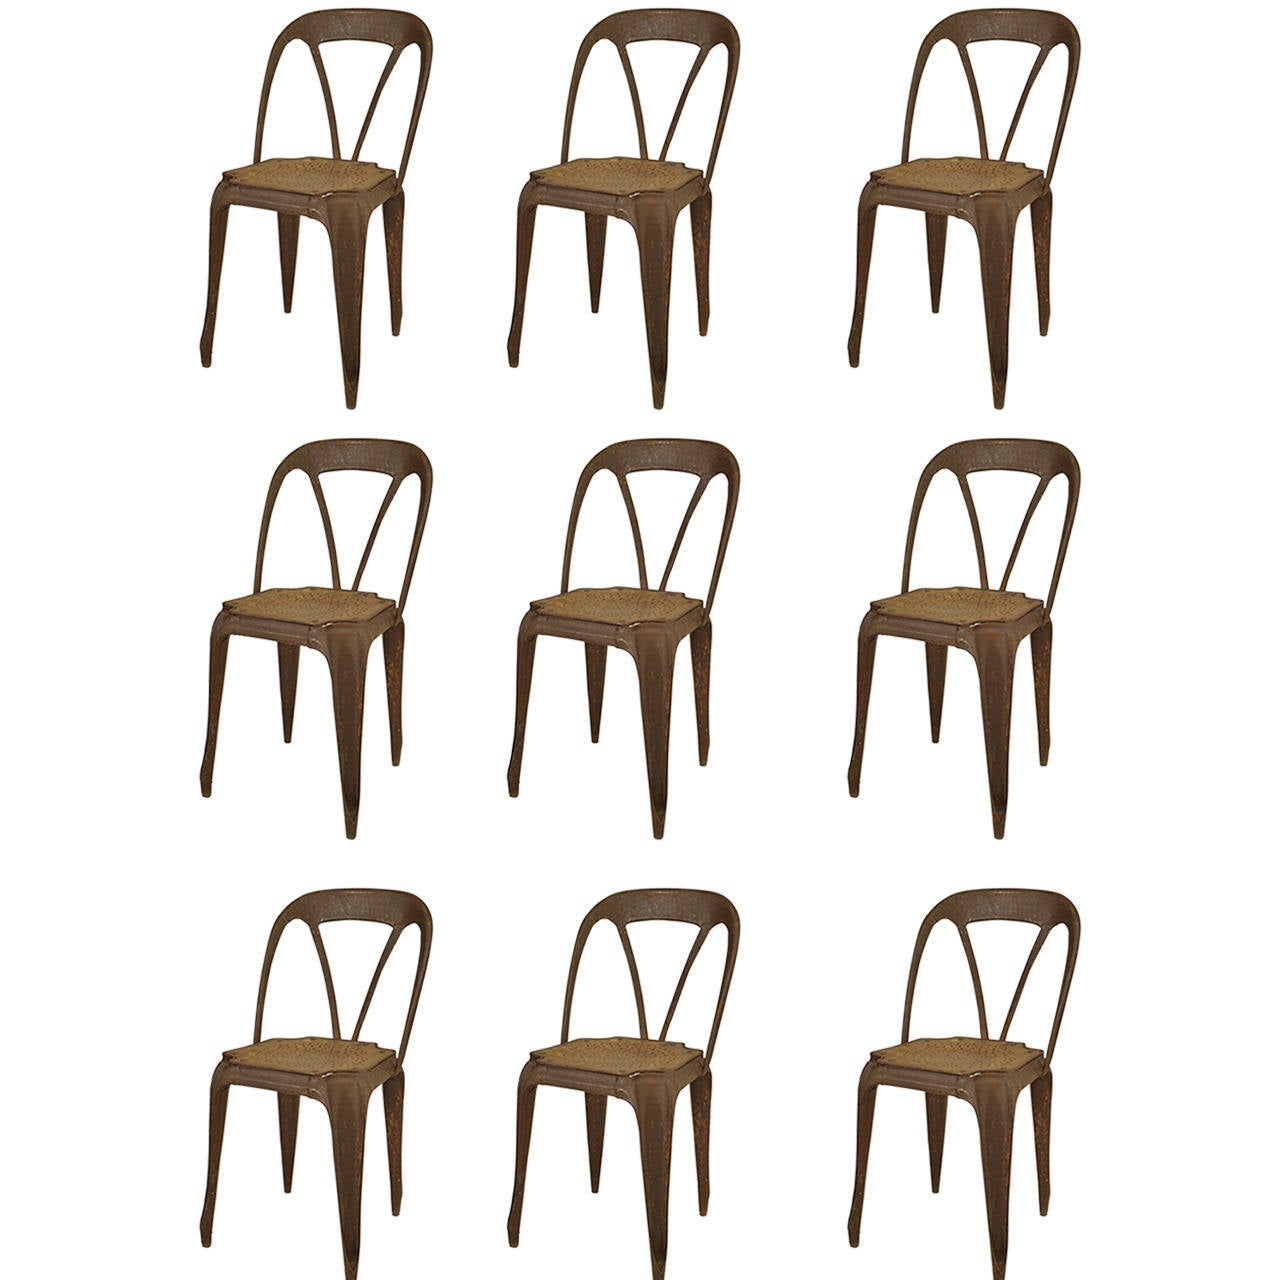 9 French Art Deco Metal Stacking Side Chairs